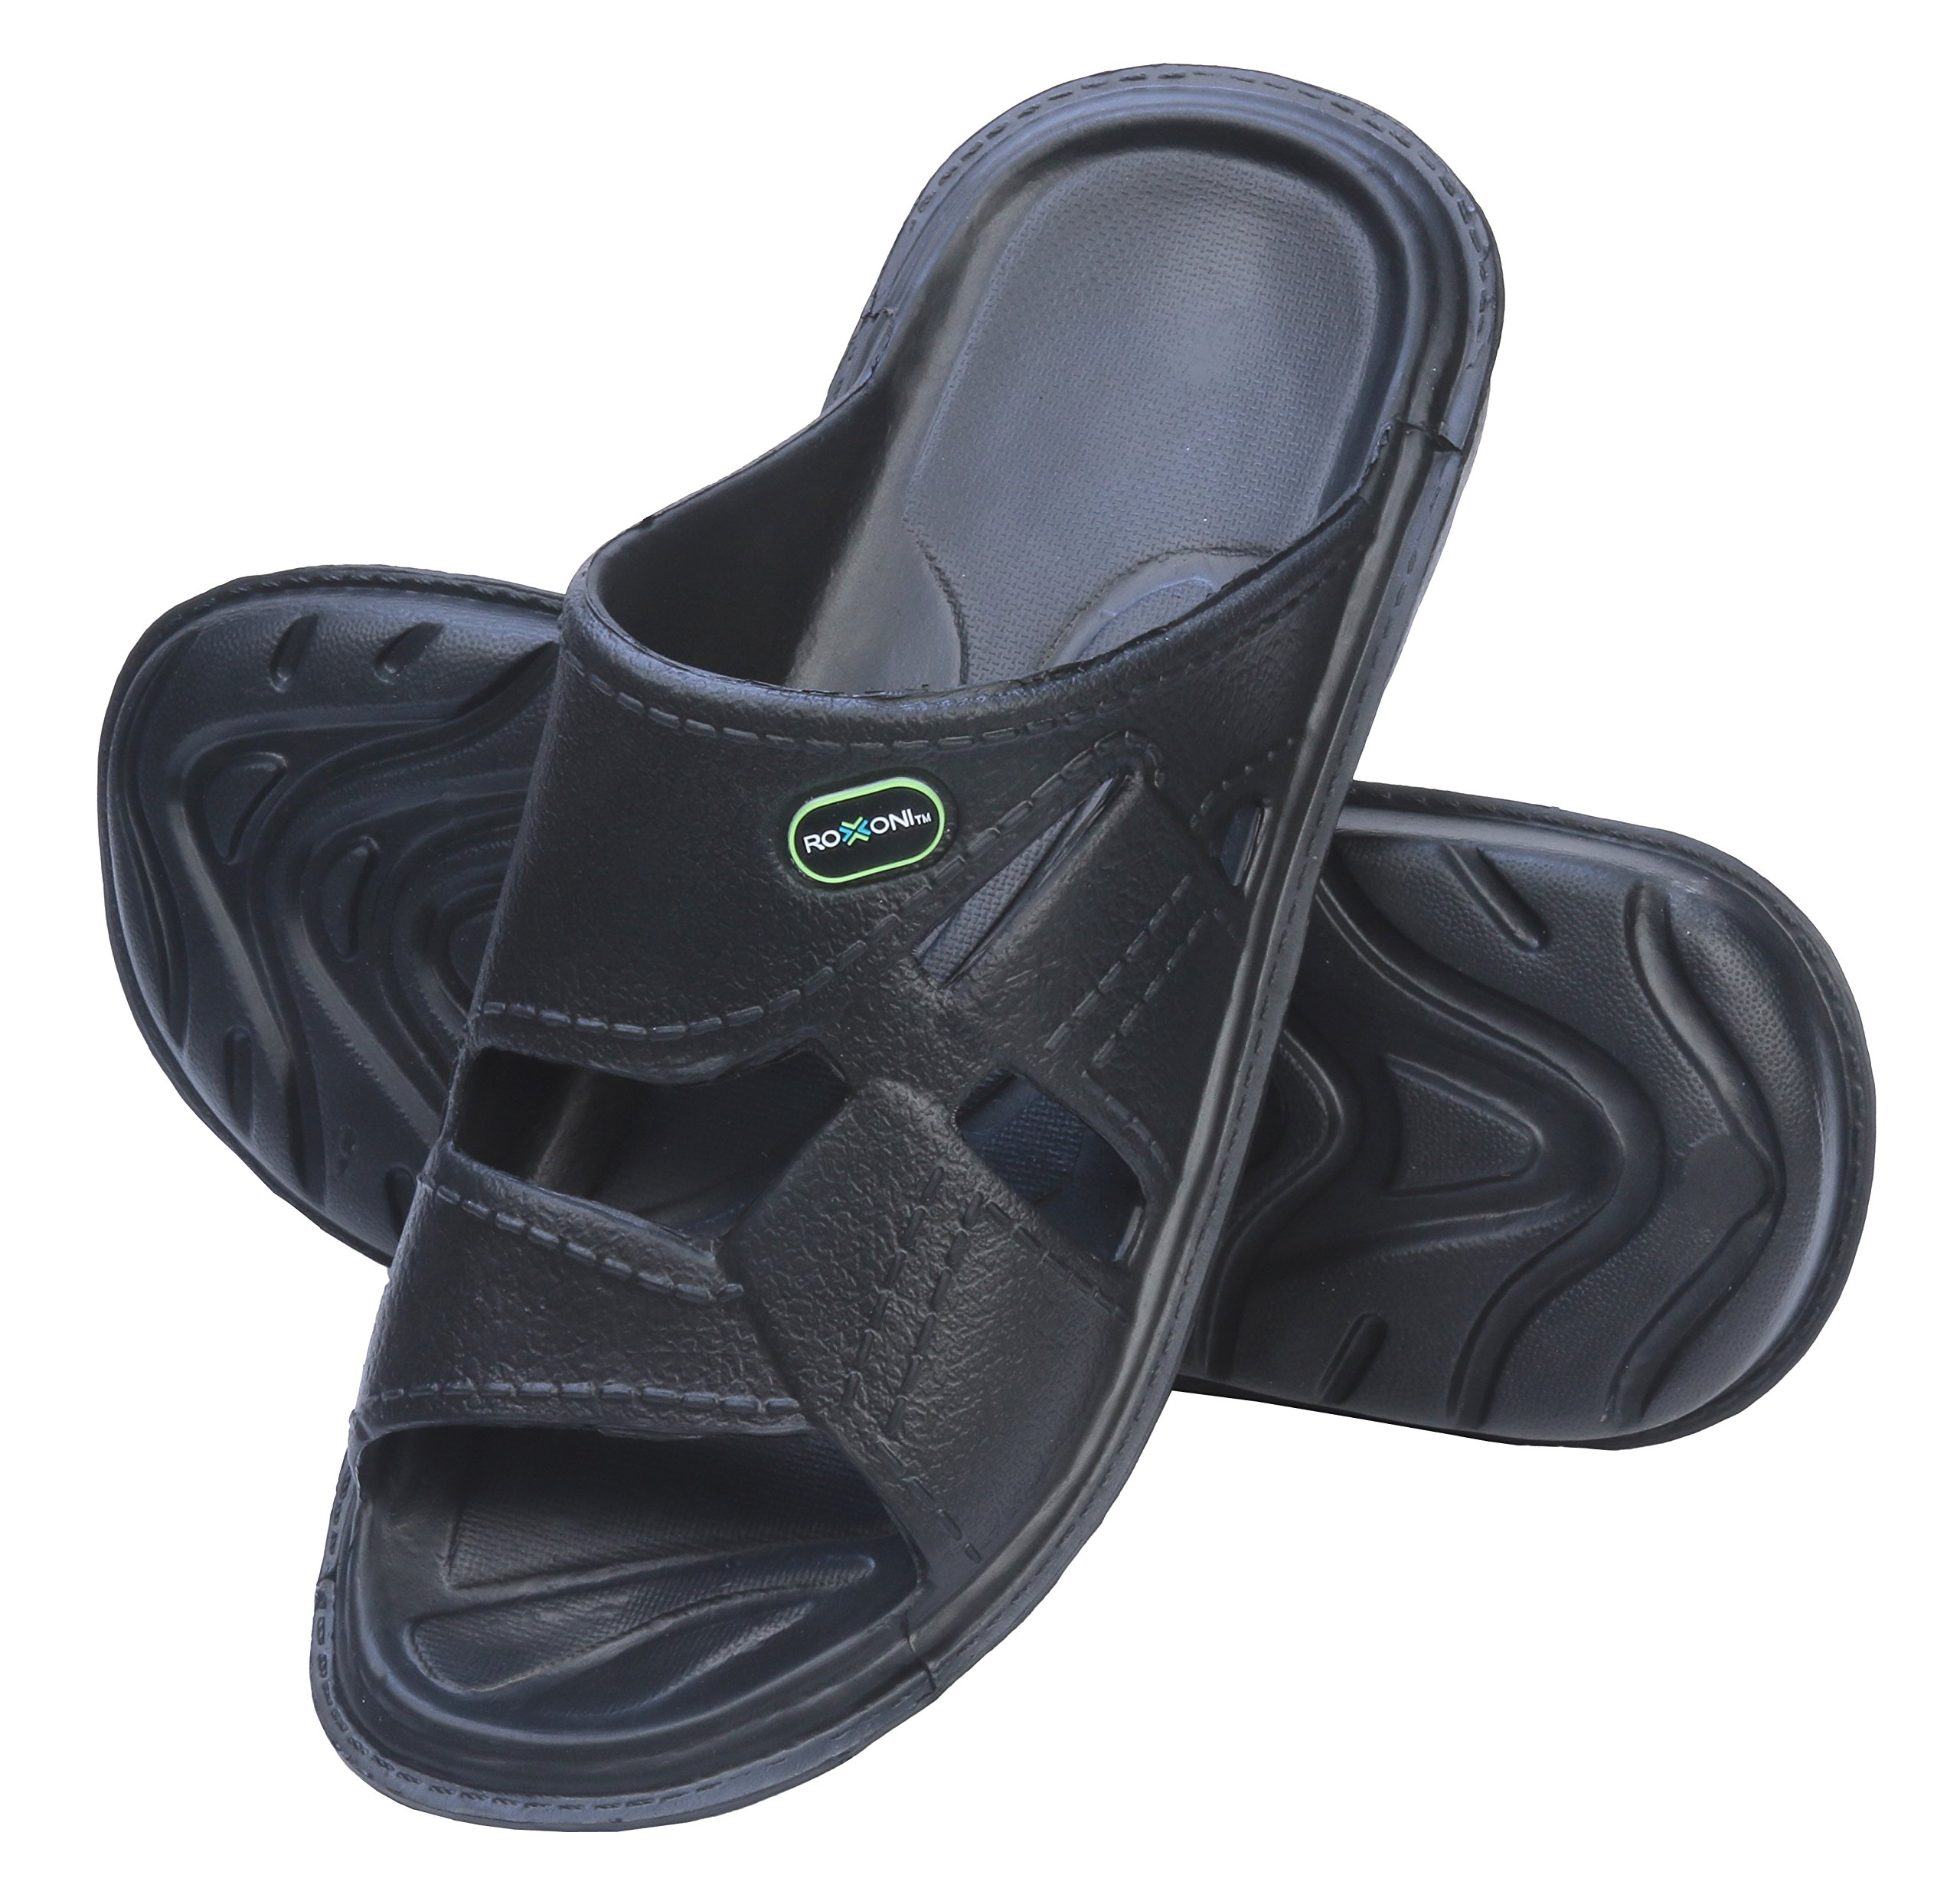 ROXONI Men's Comfortable Lightweight Slide Sandals; Great for Indoor and Outdoor Use